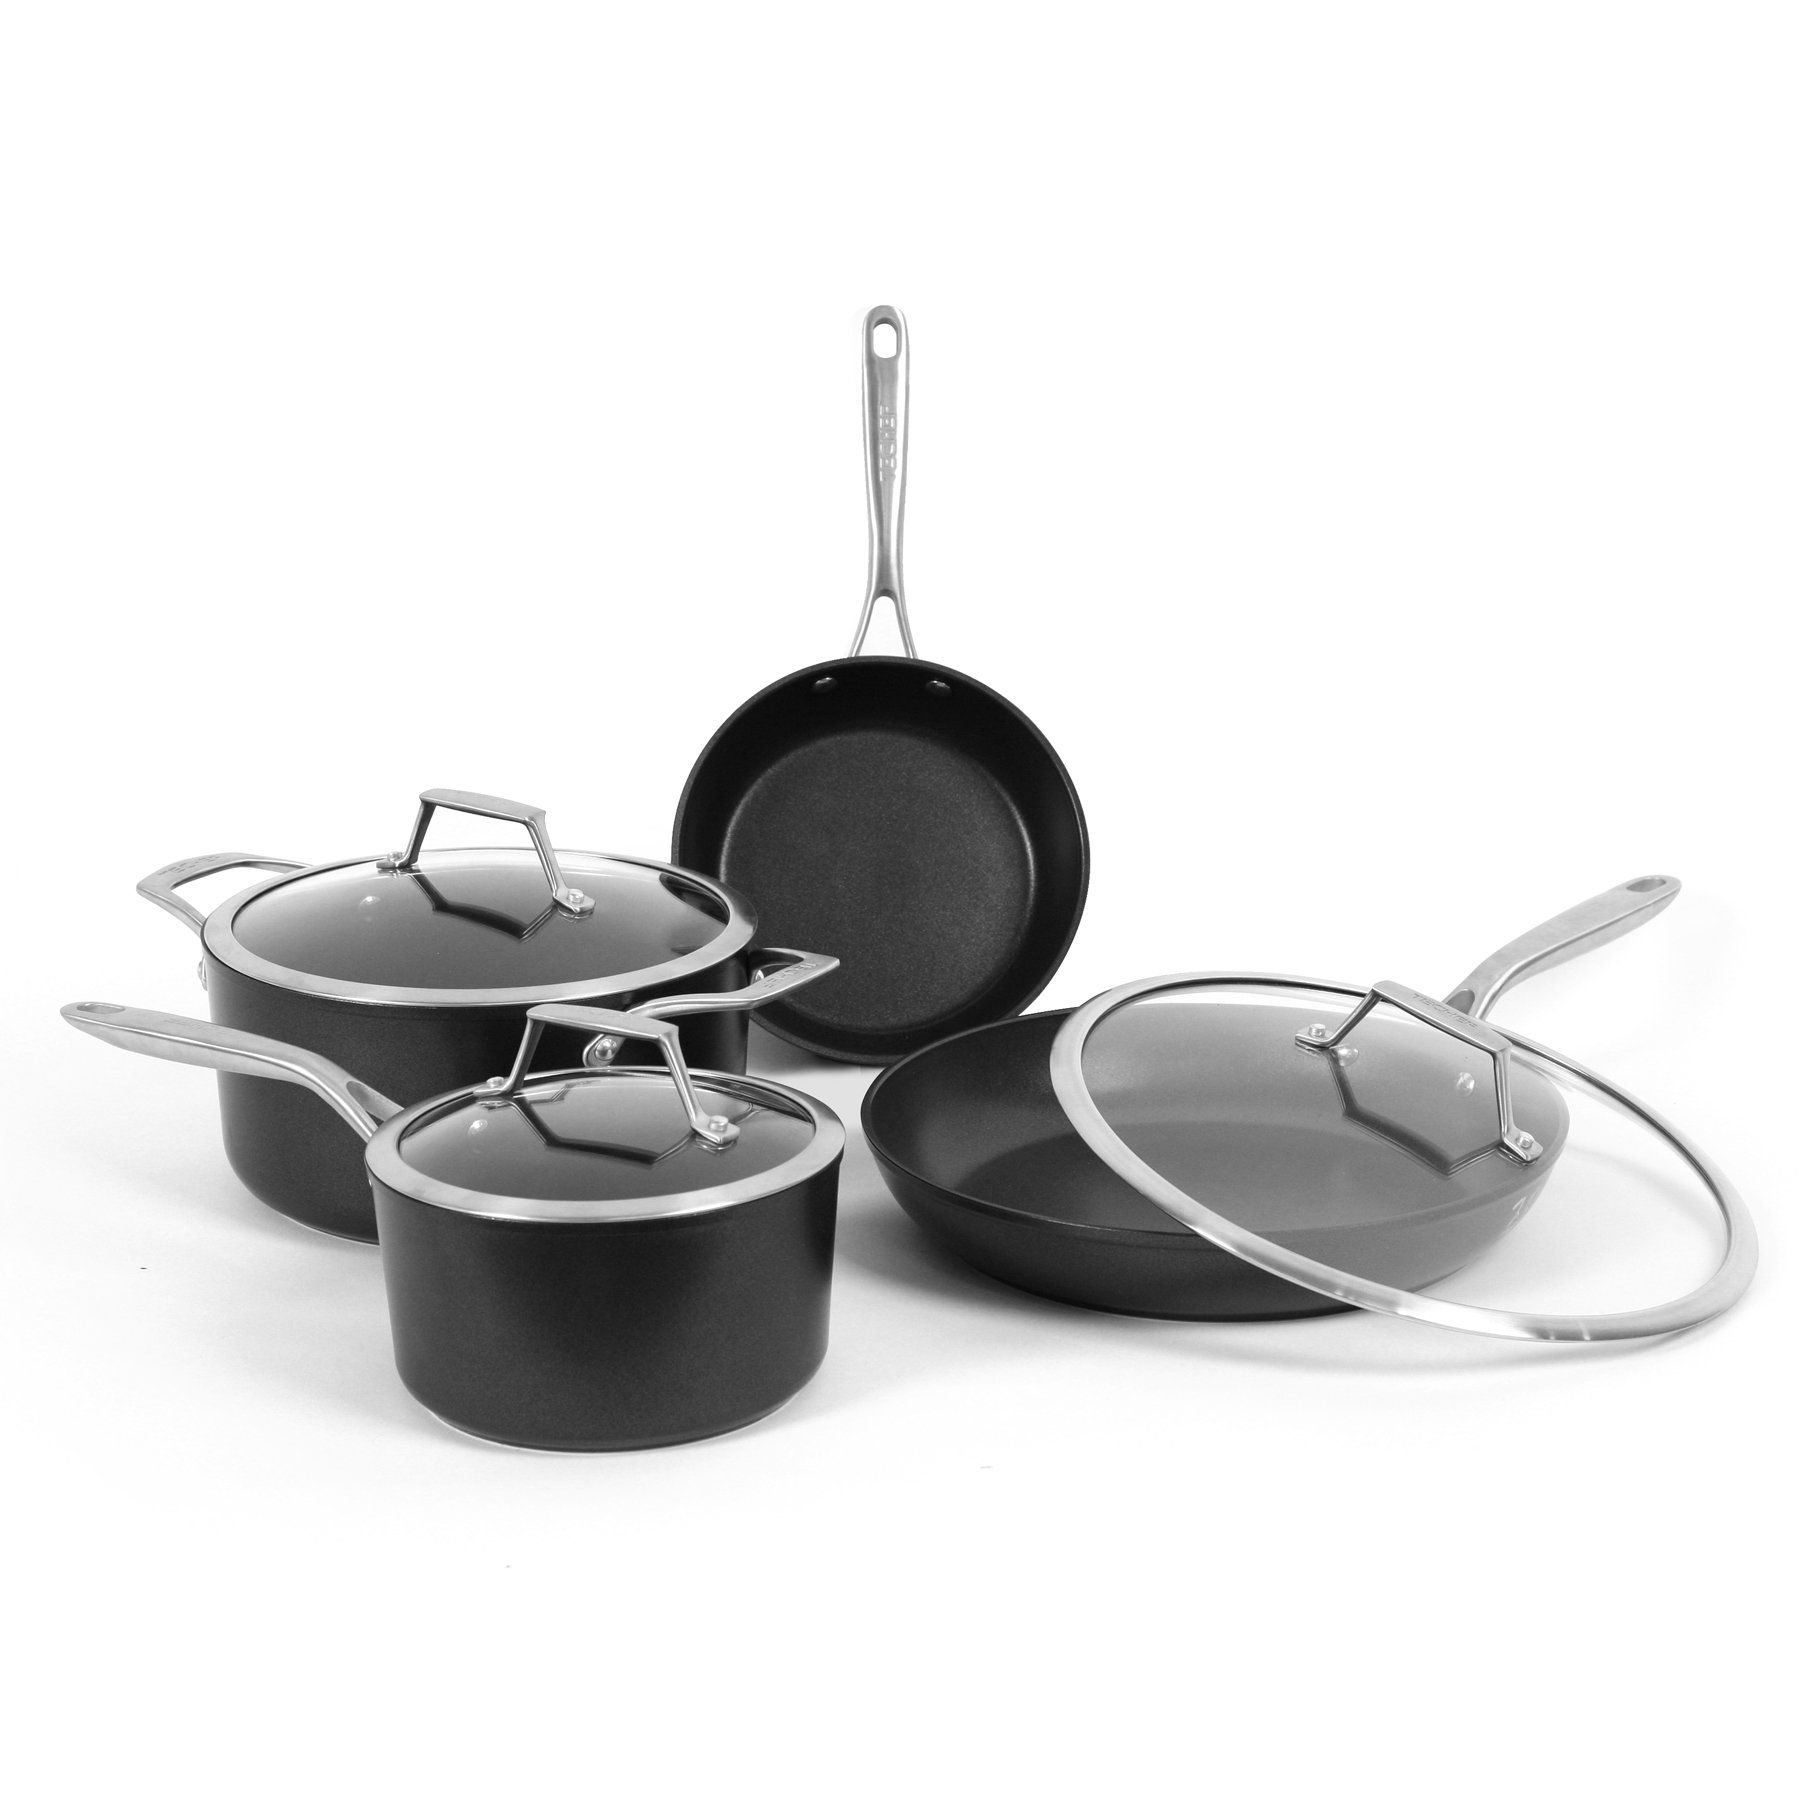 TeChef TECHEF - Onyx Collection Nonstick Cookware Set, 7-Piece by TECHEF